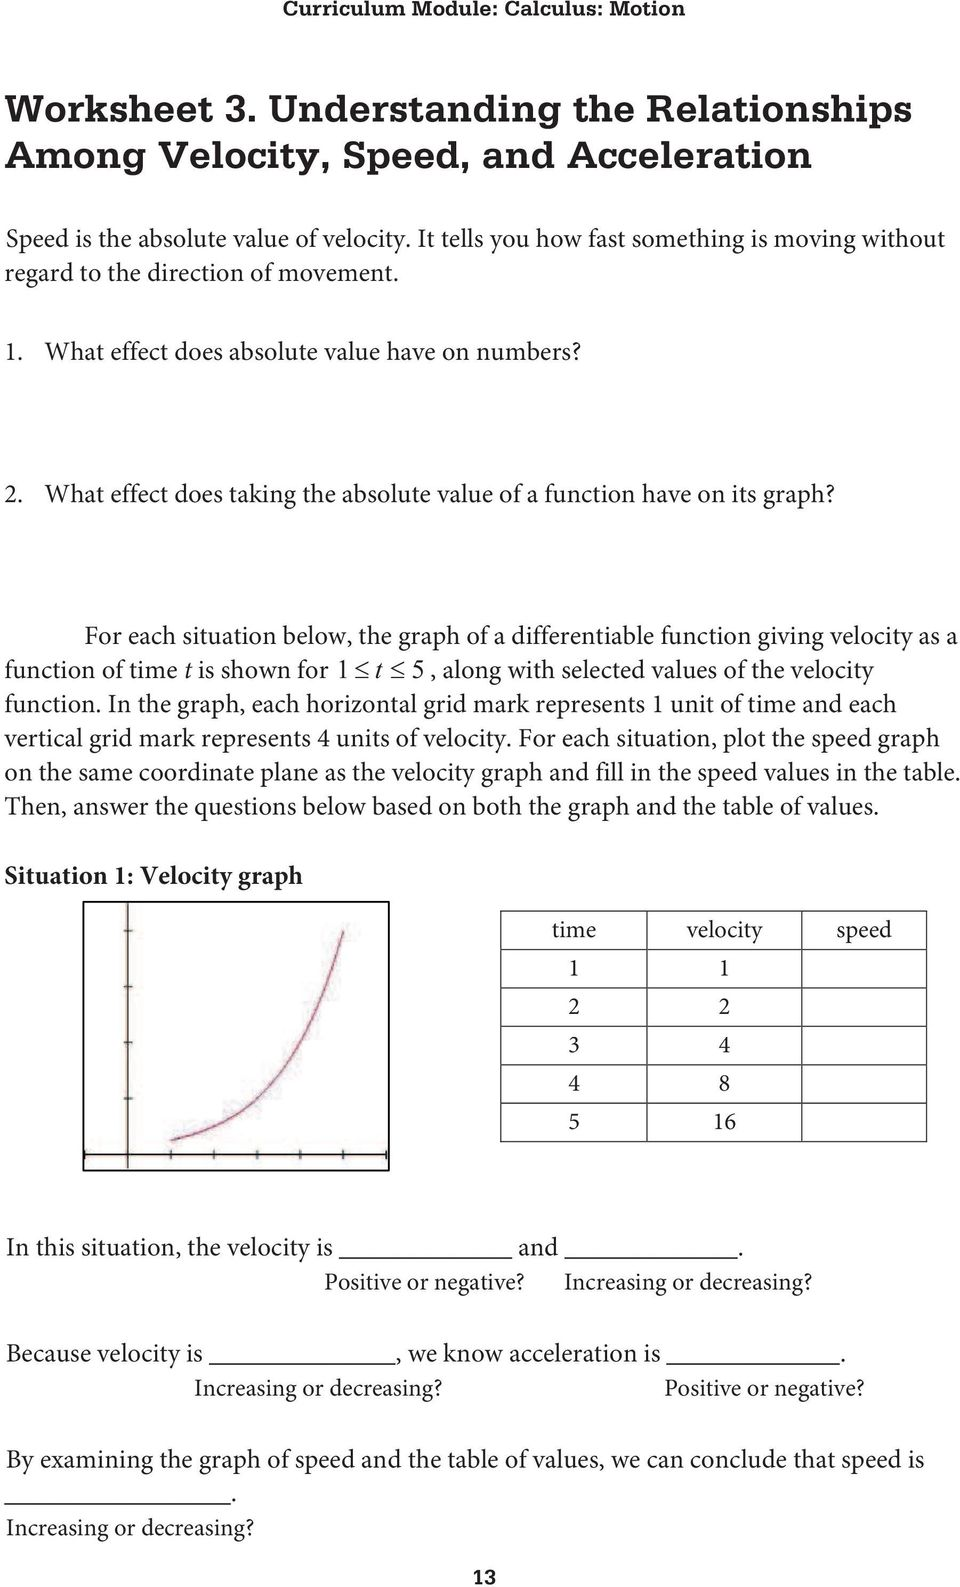 What effect does taking the absolute value of a function have on its graph?